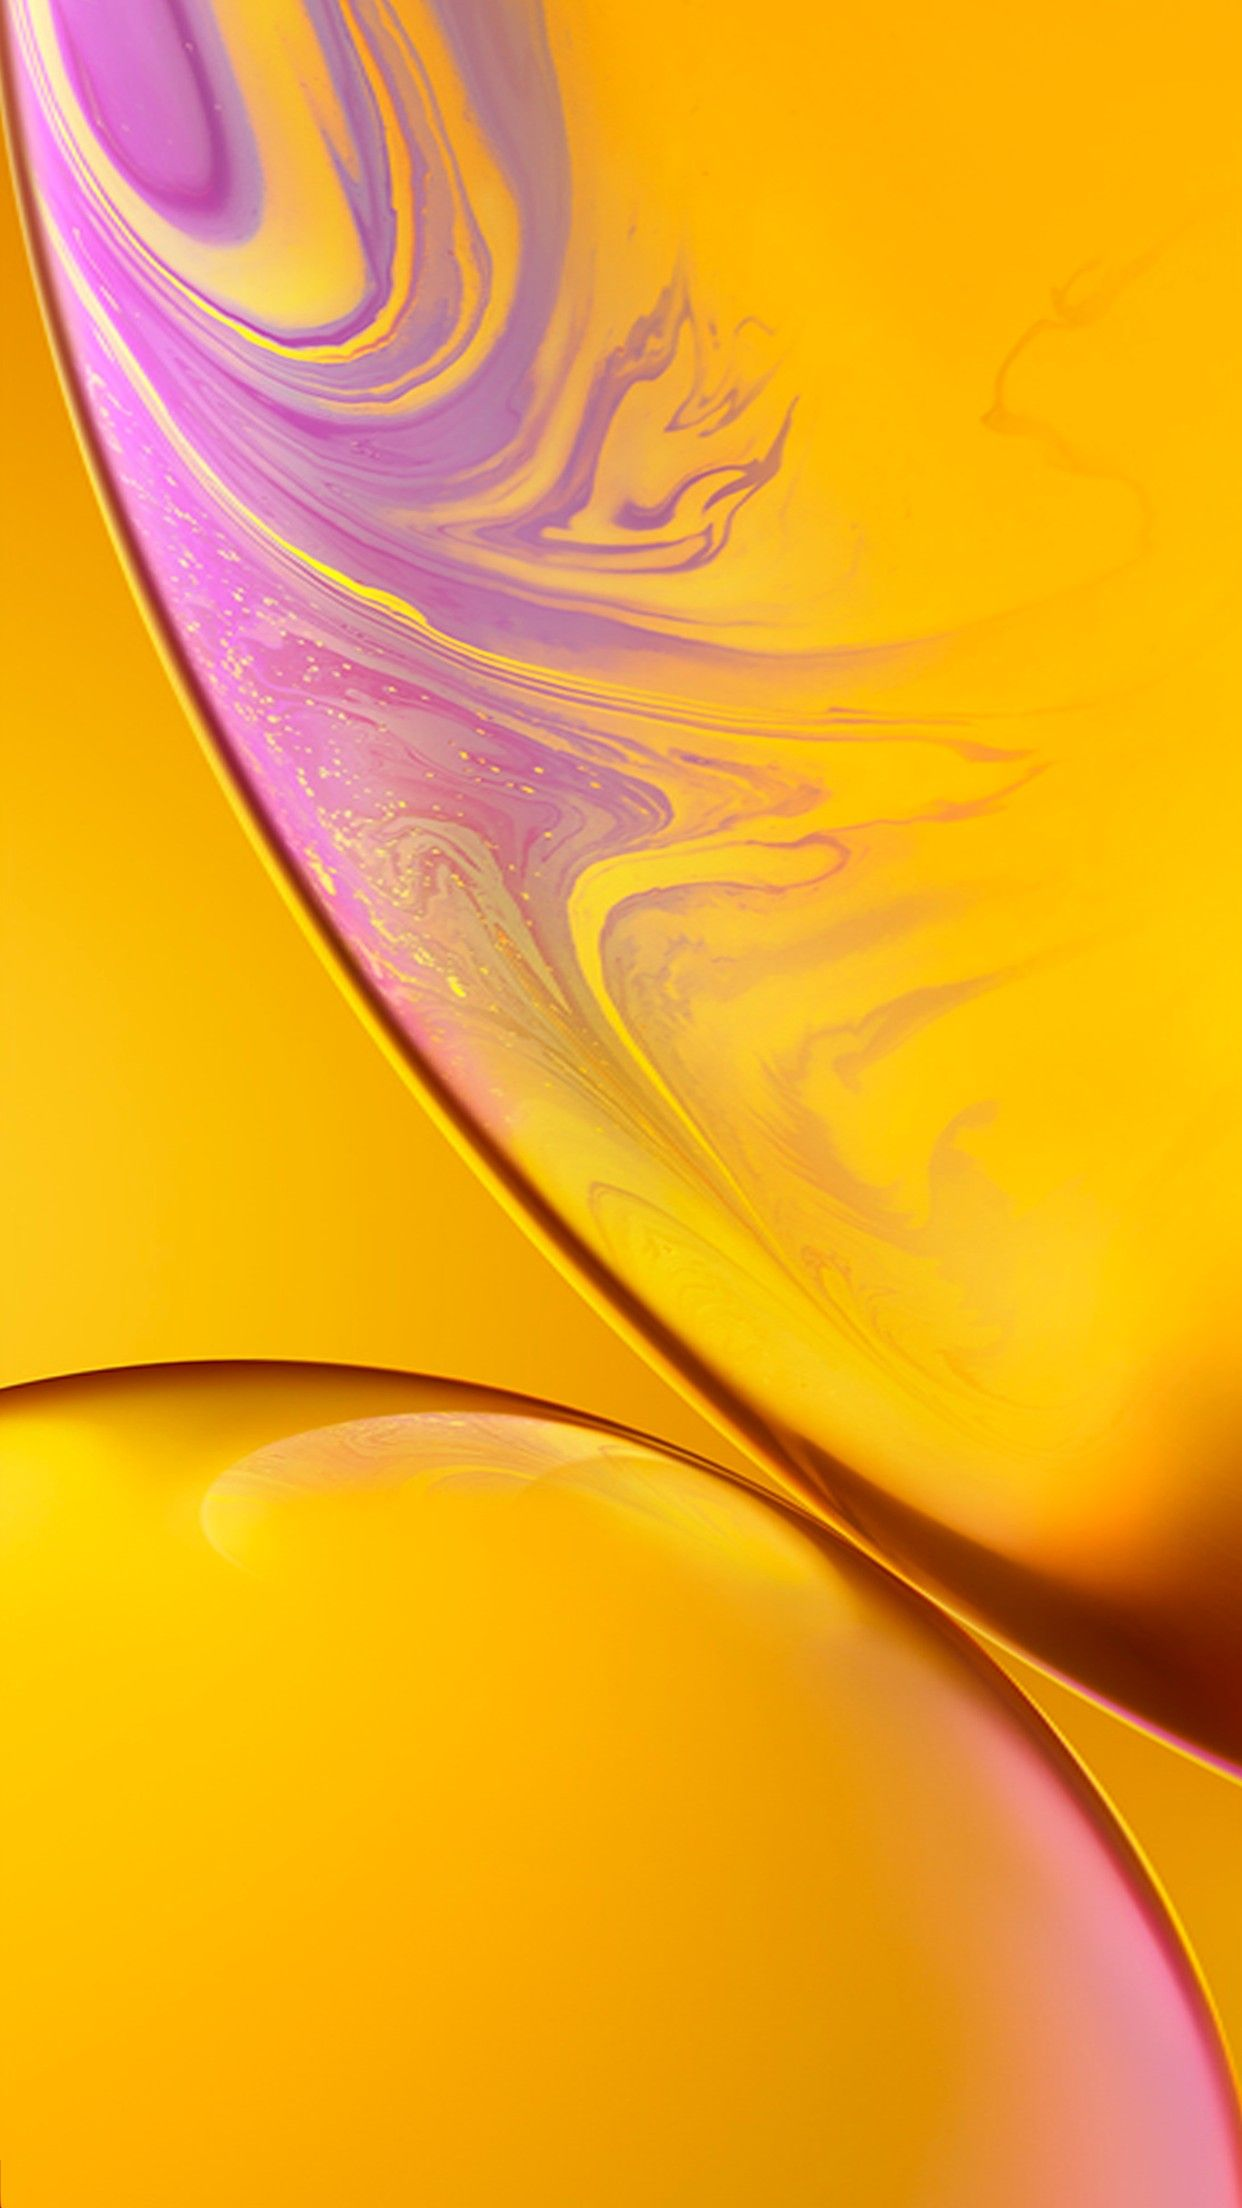 Iphone Xr Abstract Amoled Liquid Gradient Pinterest Iphone